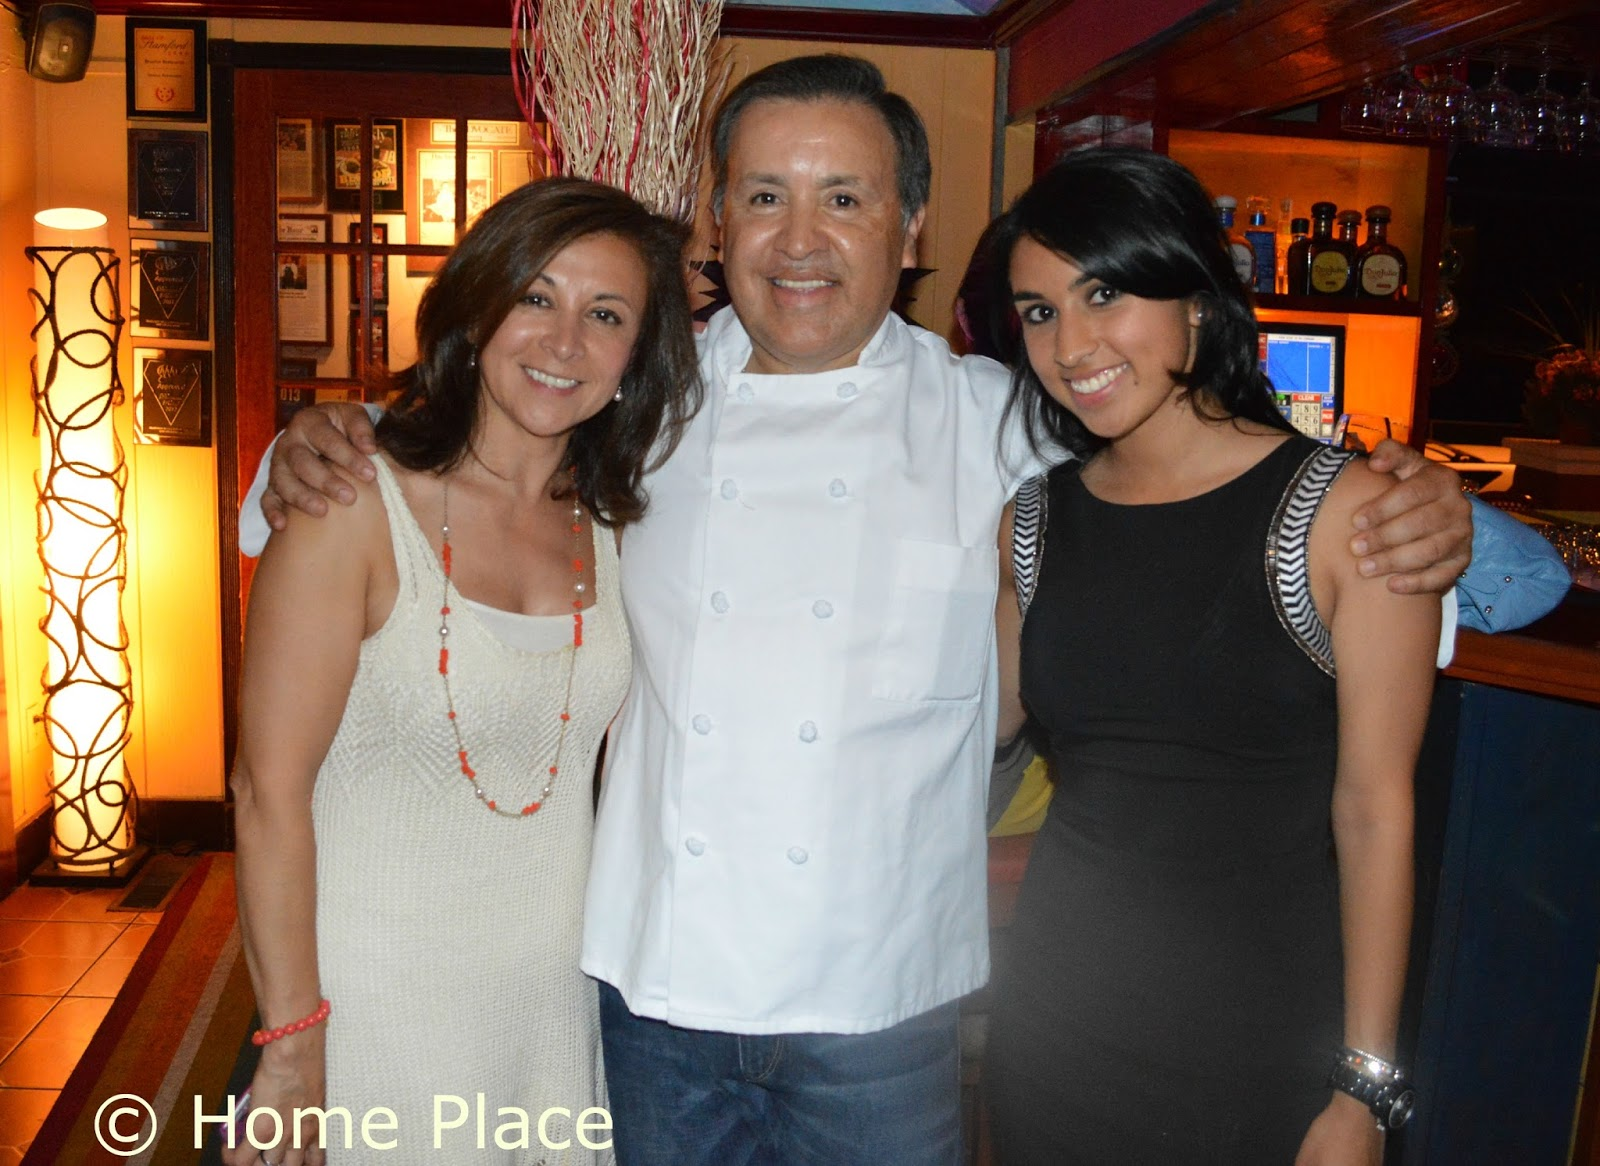 The Owners Of Brasitas Restaurant Stamford Ct